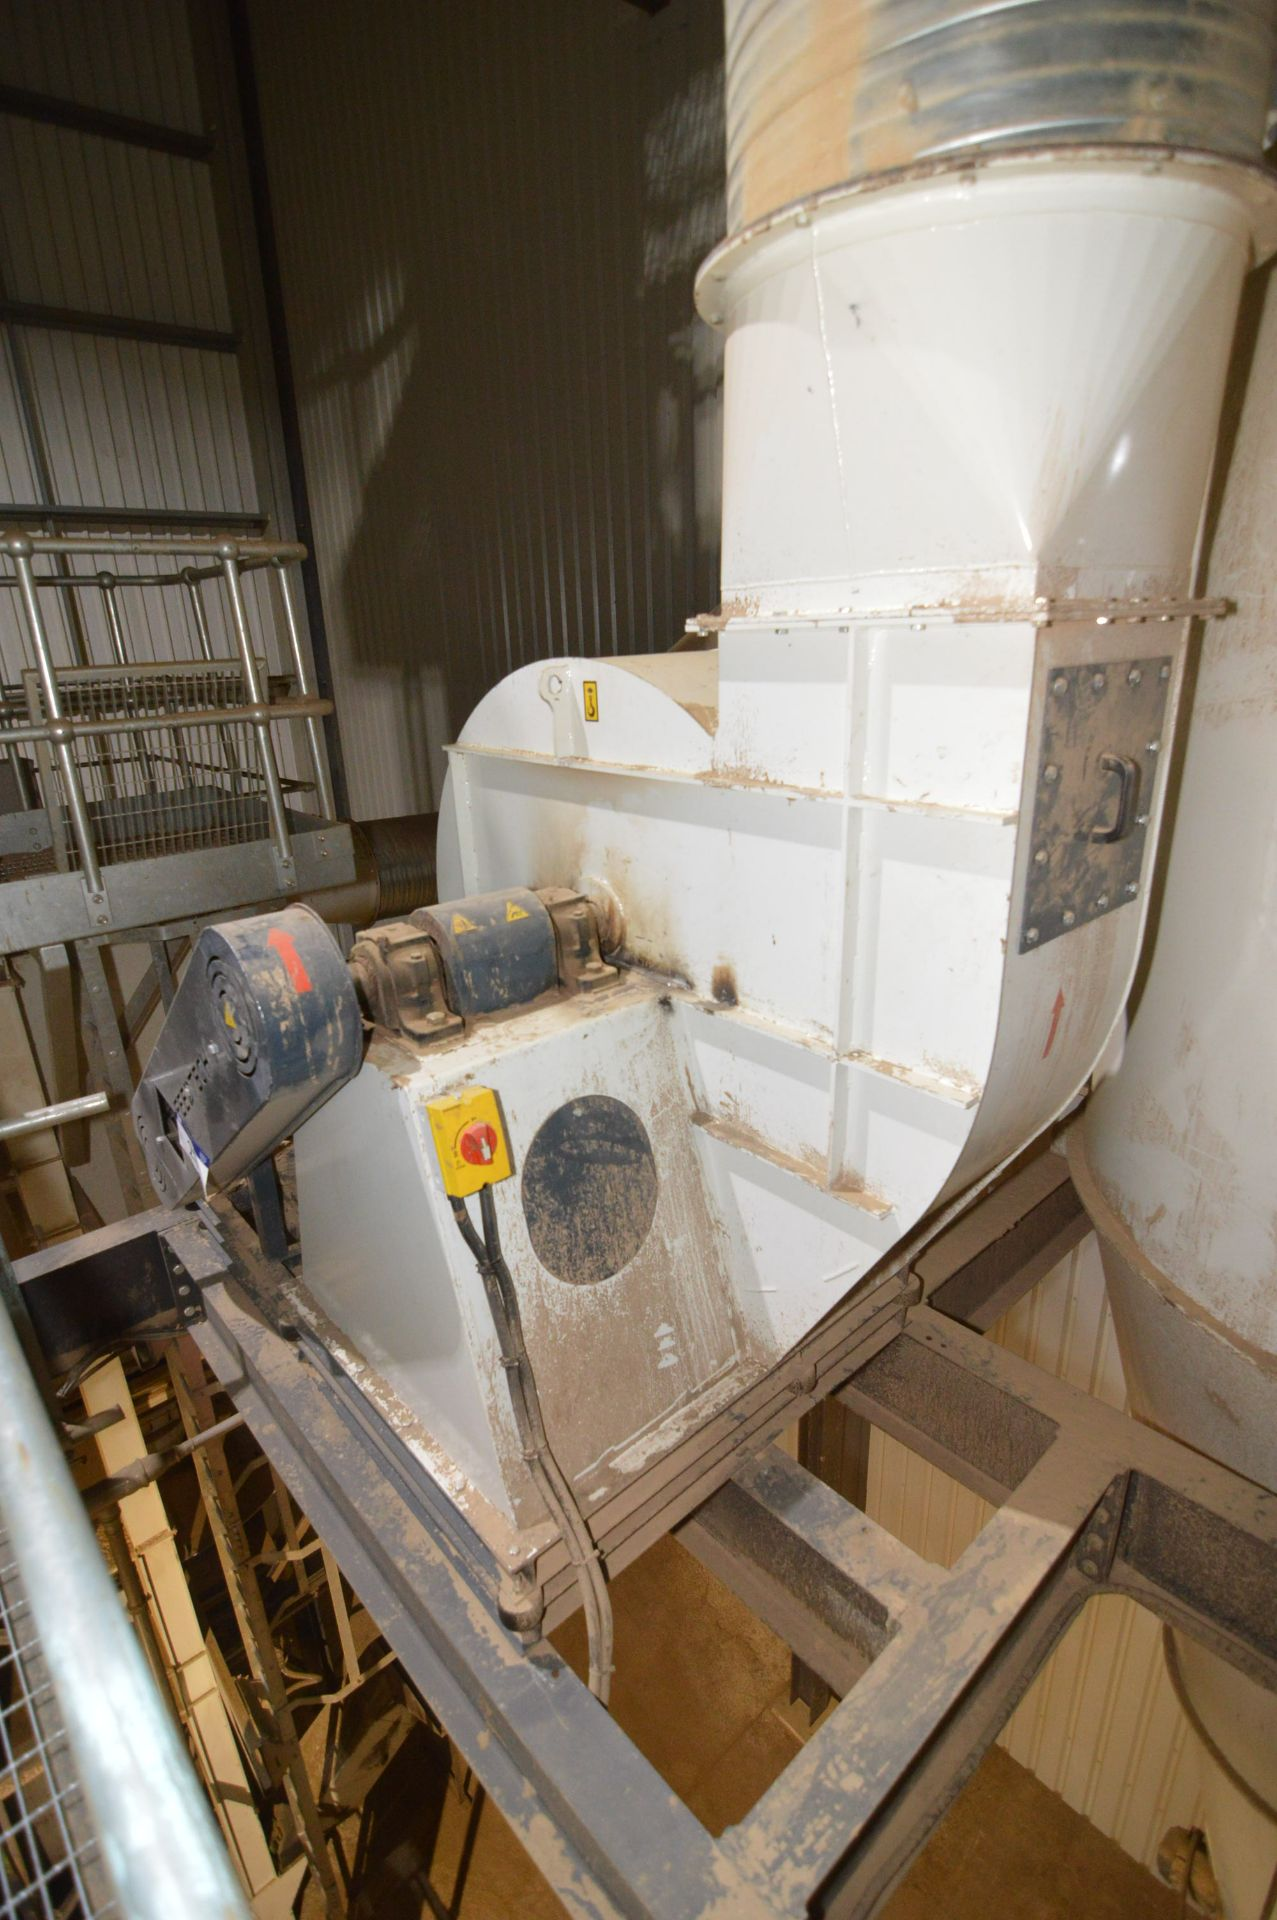 Lot 21 - Feedtech Steel Cased Centrifugal Fan, (data plate inaccessible), with approx. 500mm x 550mm